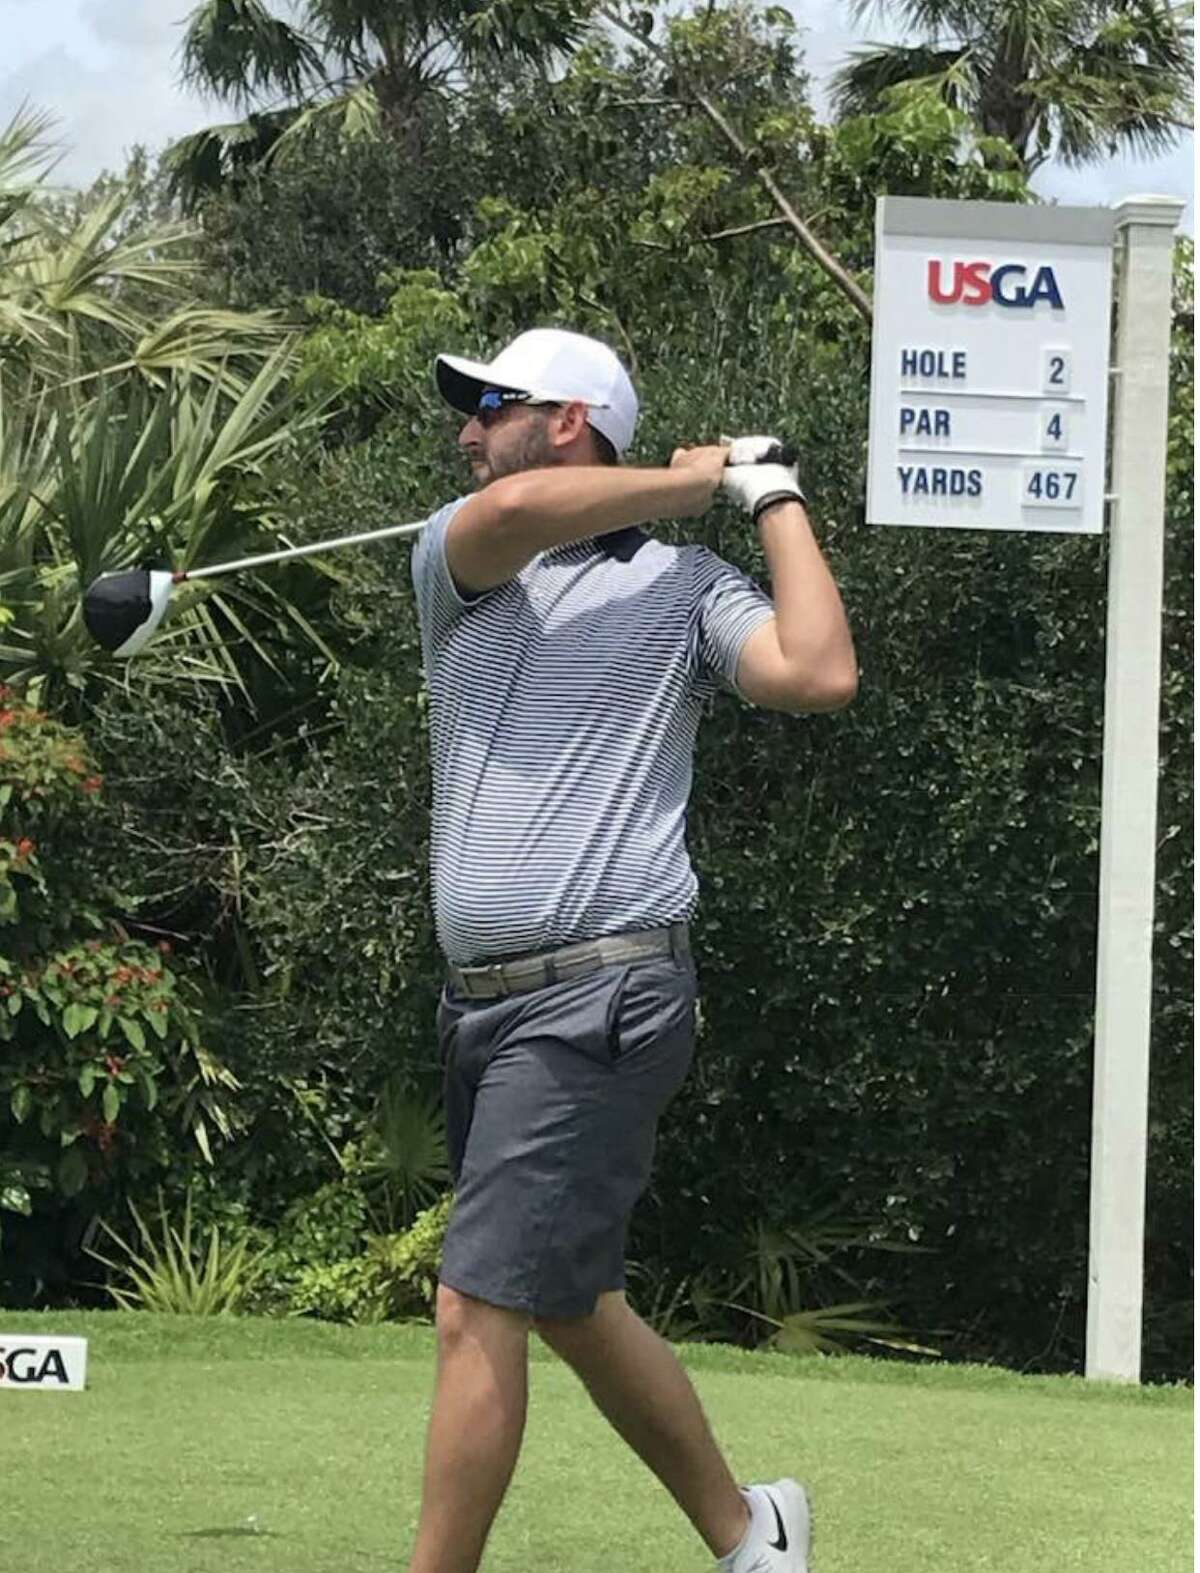 The likelihood of playing the San Francisco City Championship in wet and muddy conditions doesn?•t bother quarterfinalist Bobby Bucey.